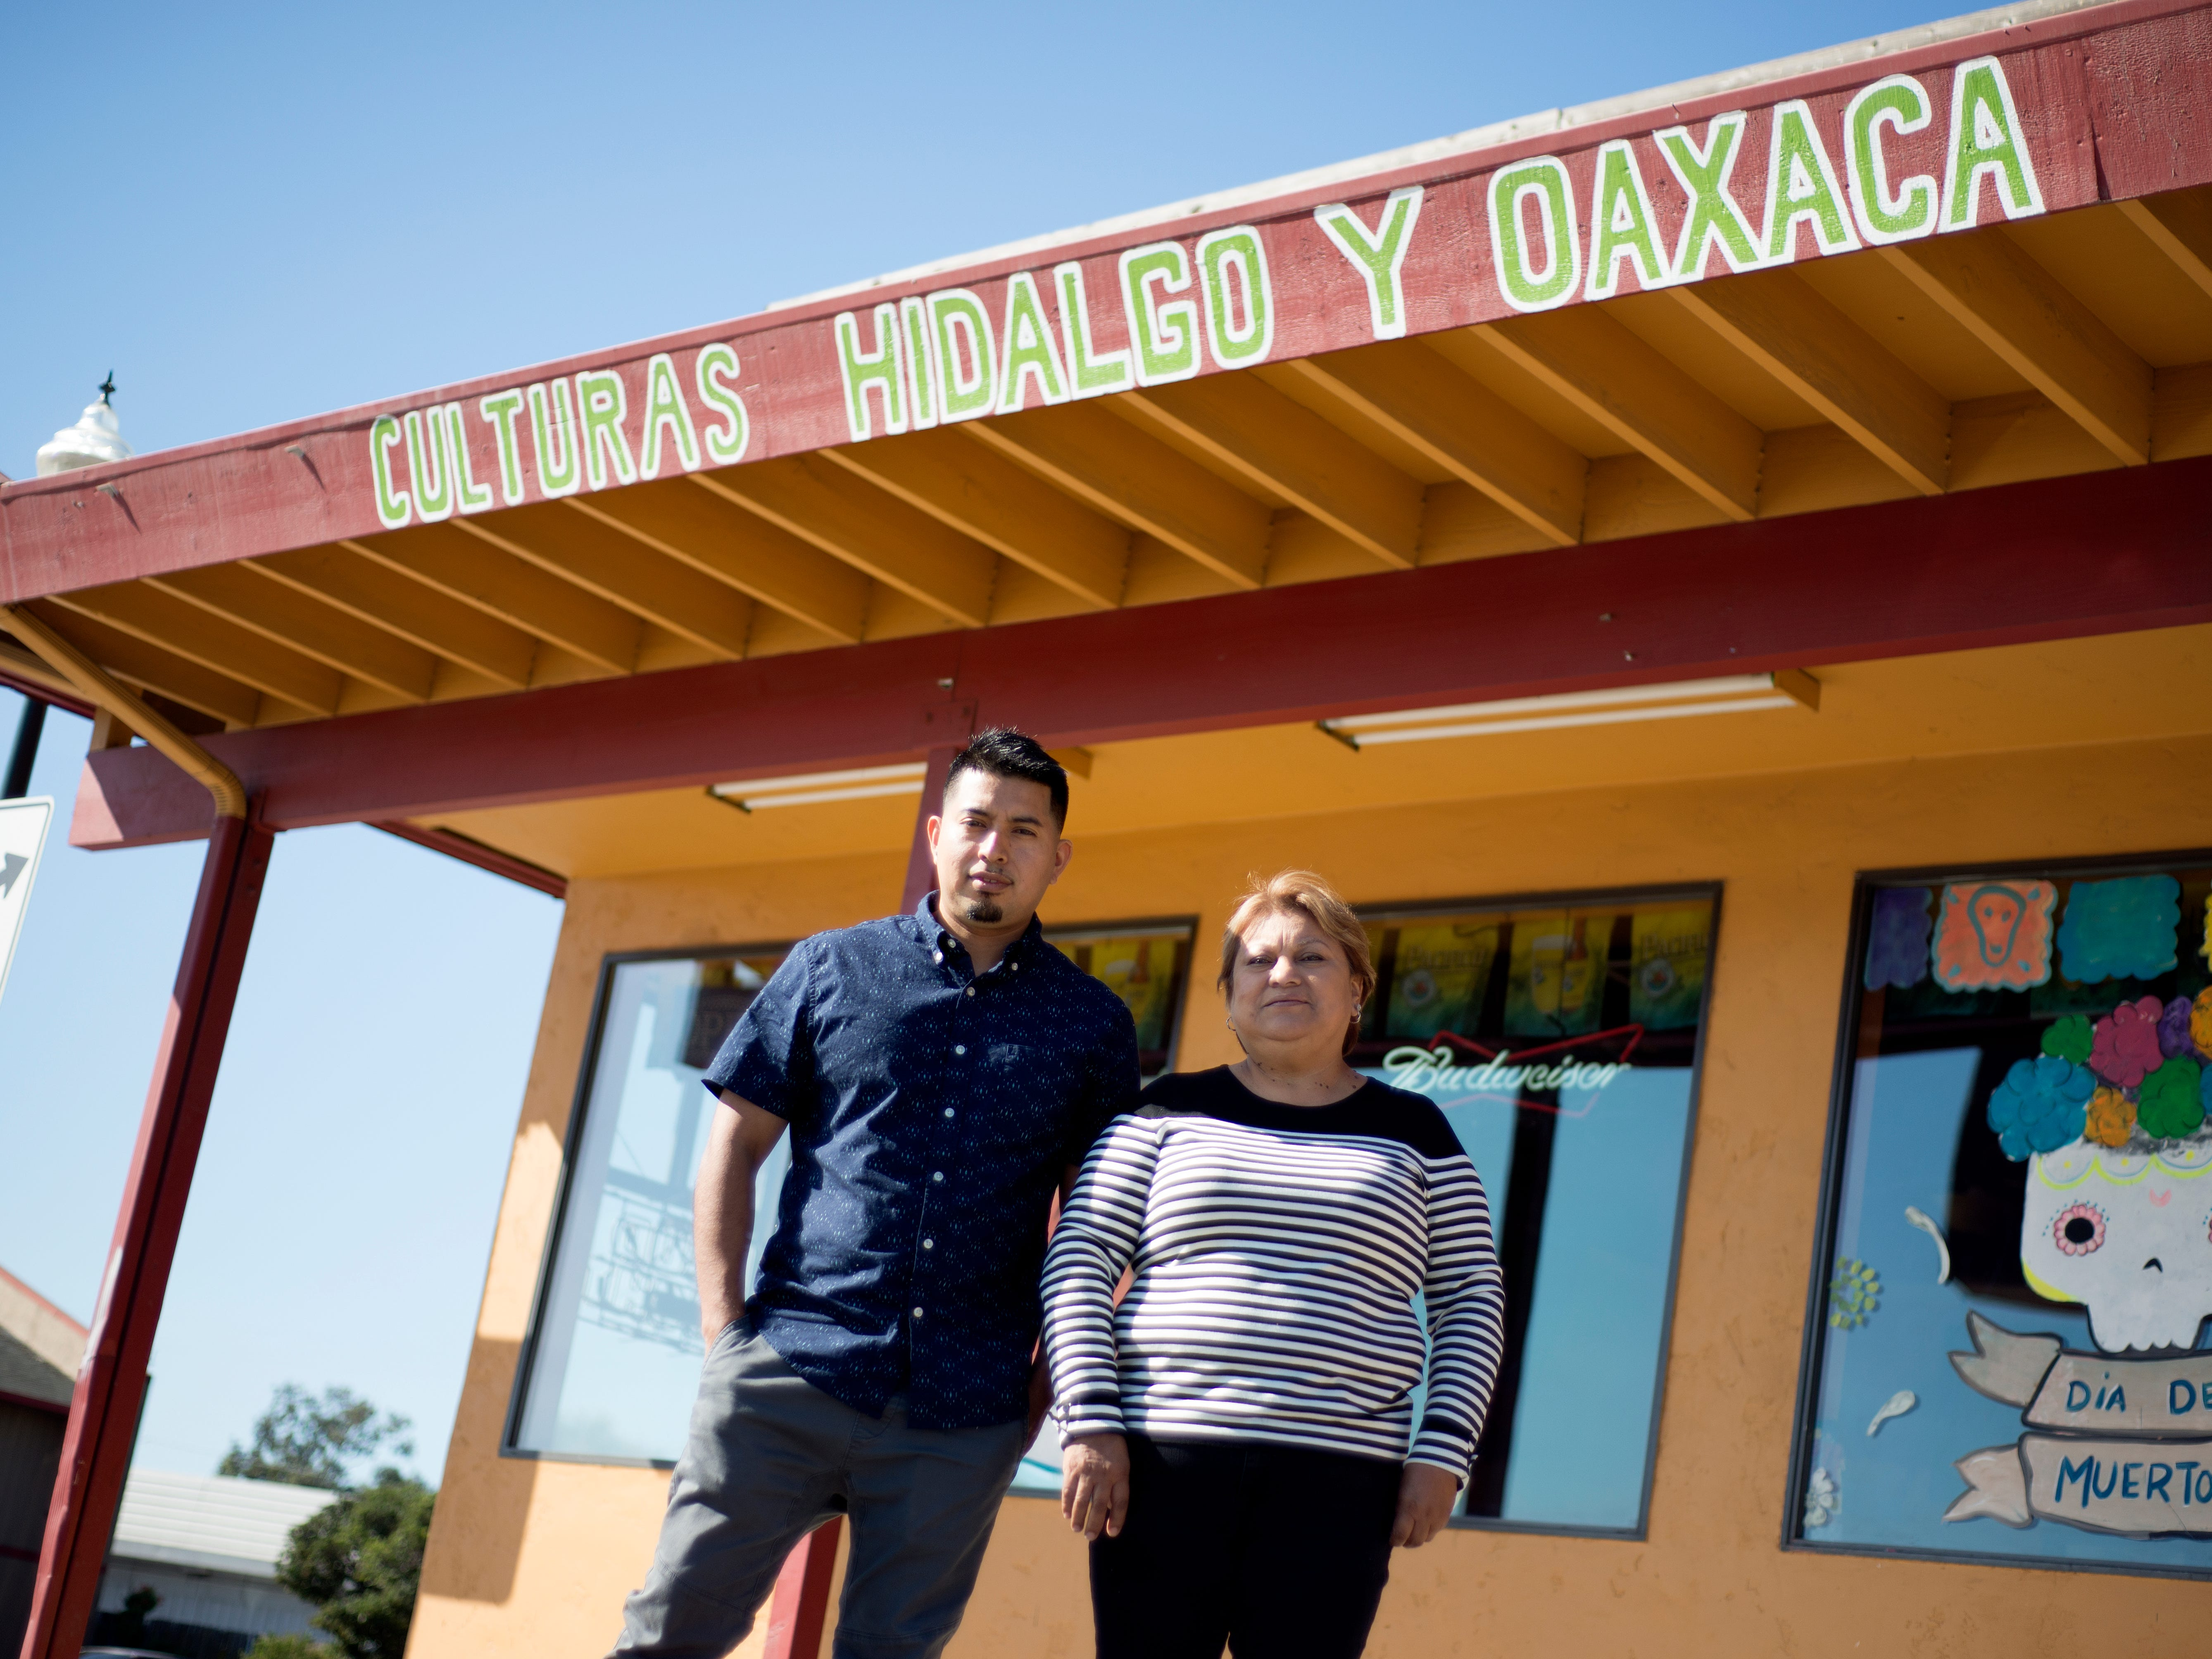 Roman Monjaraz, left, and Martha Tapia, right, stand in front of Culturas Hidalgo y Oaxaca, the restaurant they co-own, Oct. 25, 2018.